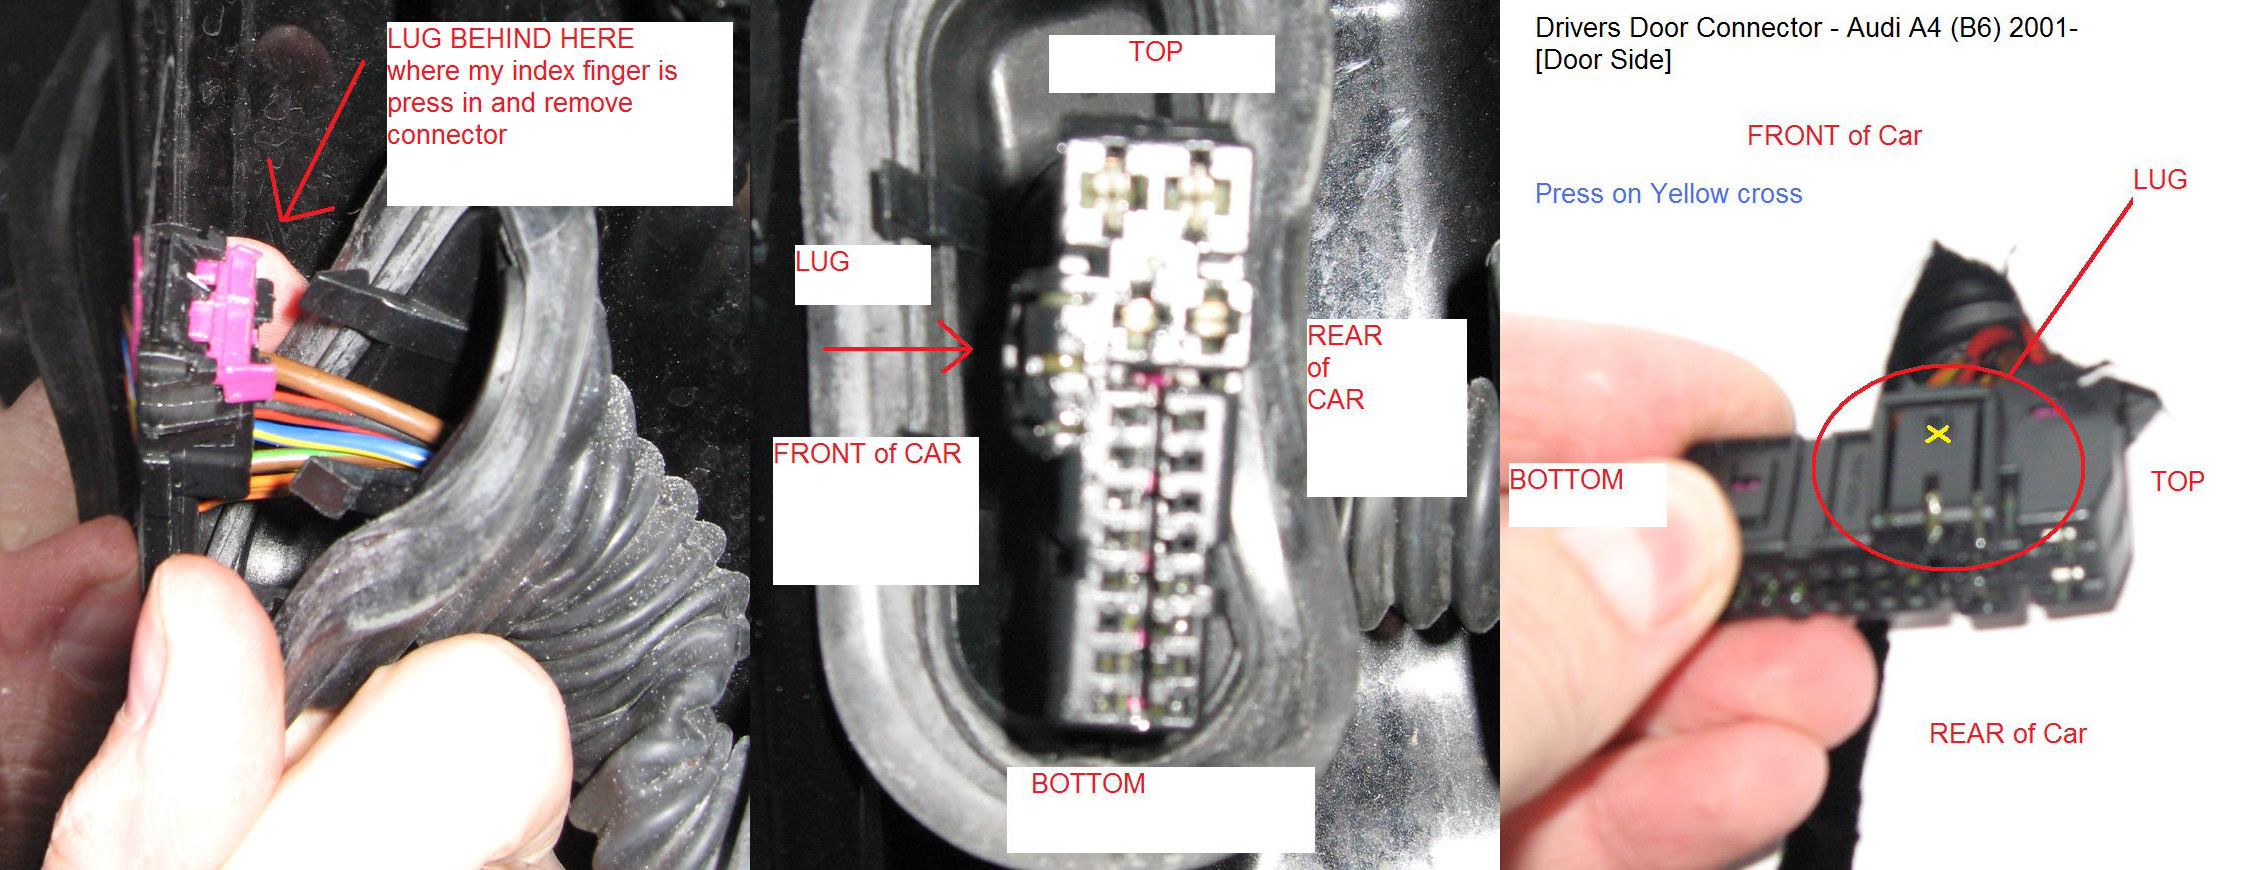 How Do I Unplug Drivers Door Wiring Loom From The Car Body Audi Pin Way Auto Wire Harness Connector View Img